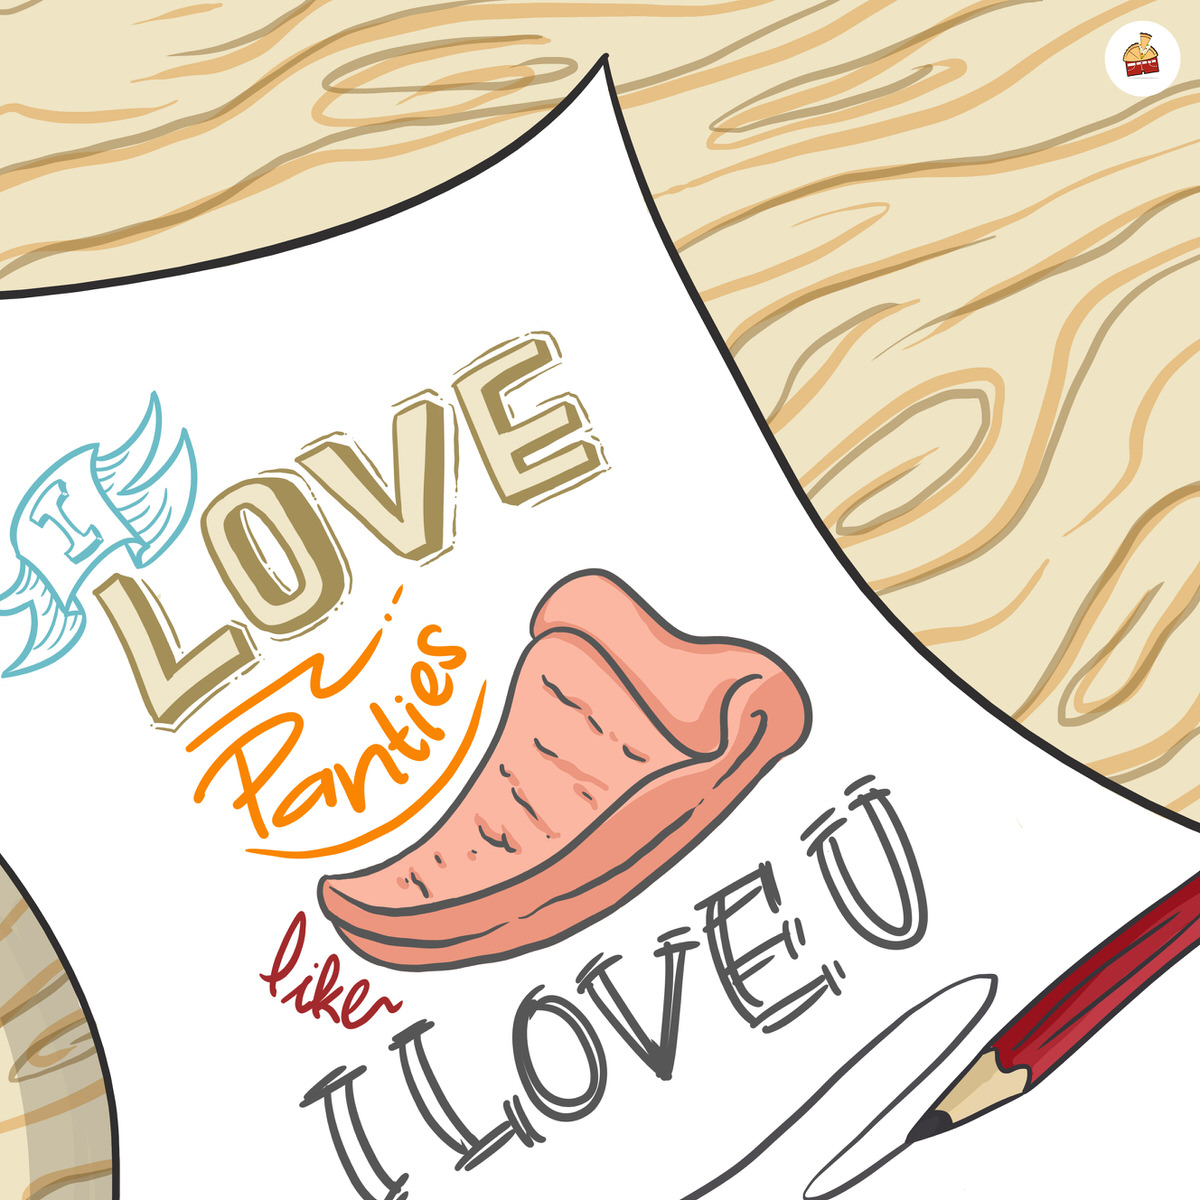 Love You Panties Pizza Like Always Jadikan Panties Pizza Inspirasi Senimu